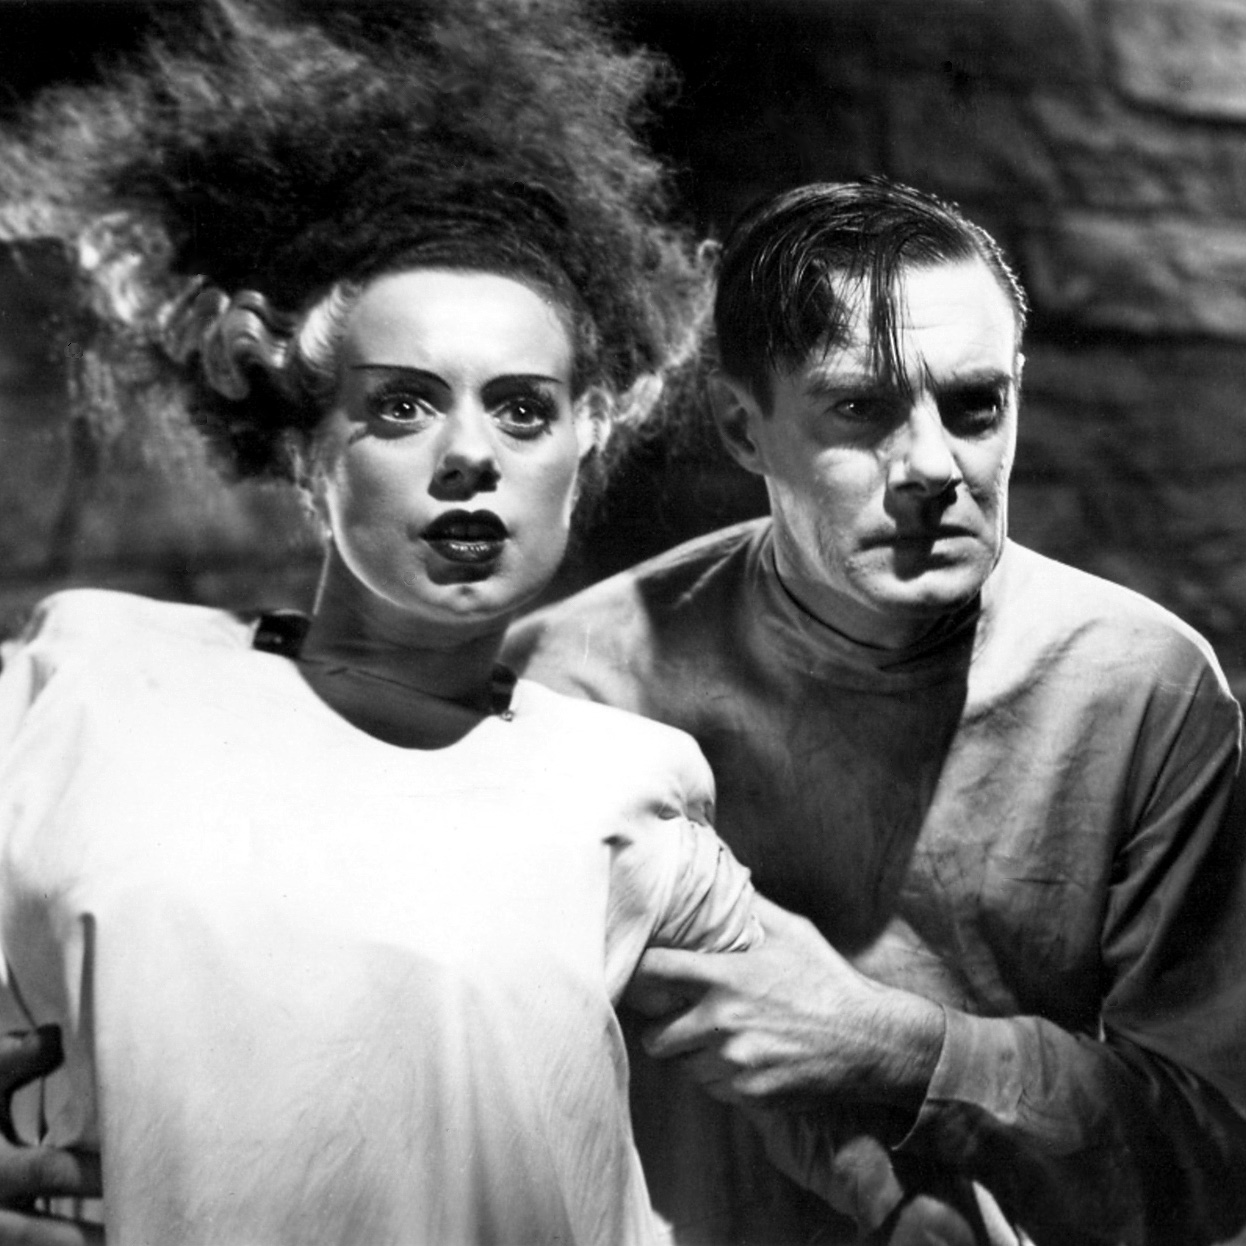 franz-waxman-bride-of-frankenstein-bw-1246